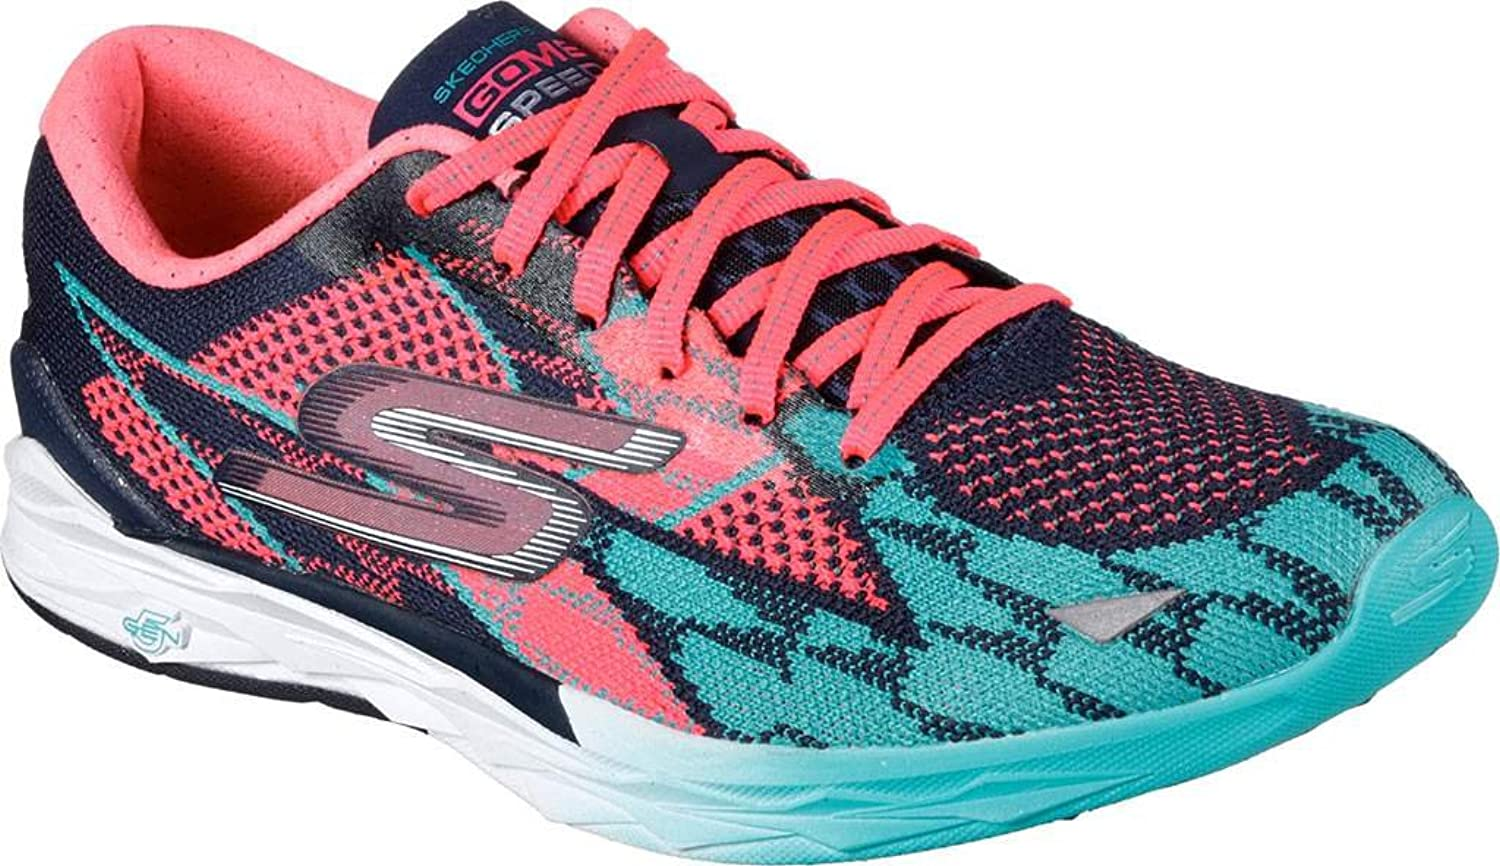 Skechers Women's GOmeb Speed 4 Racing shoes Navy Hot Pink Size 10 M